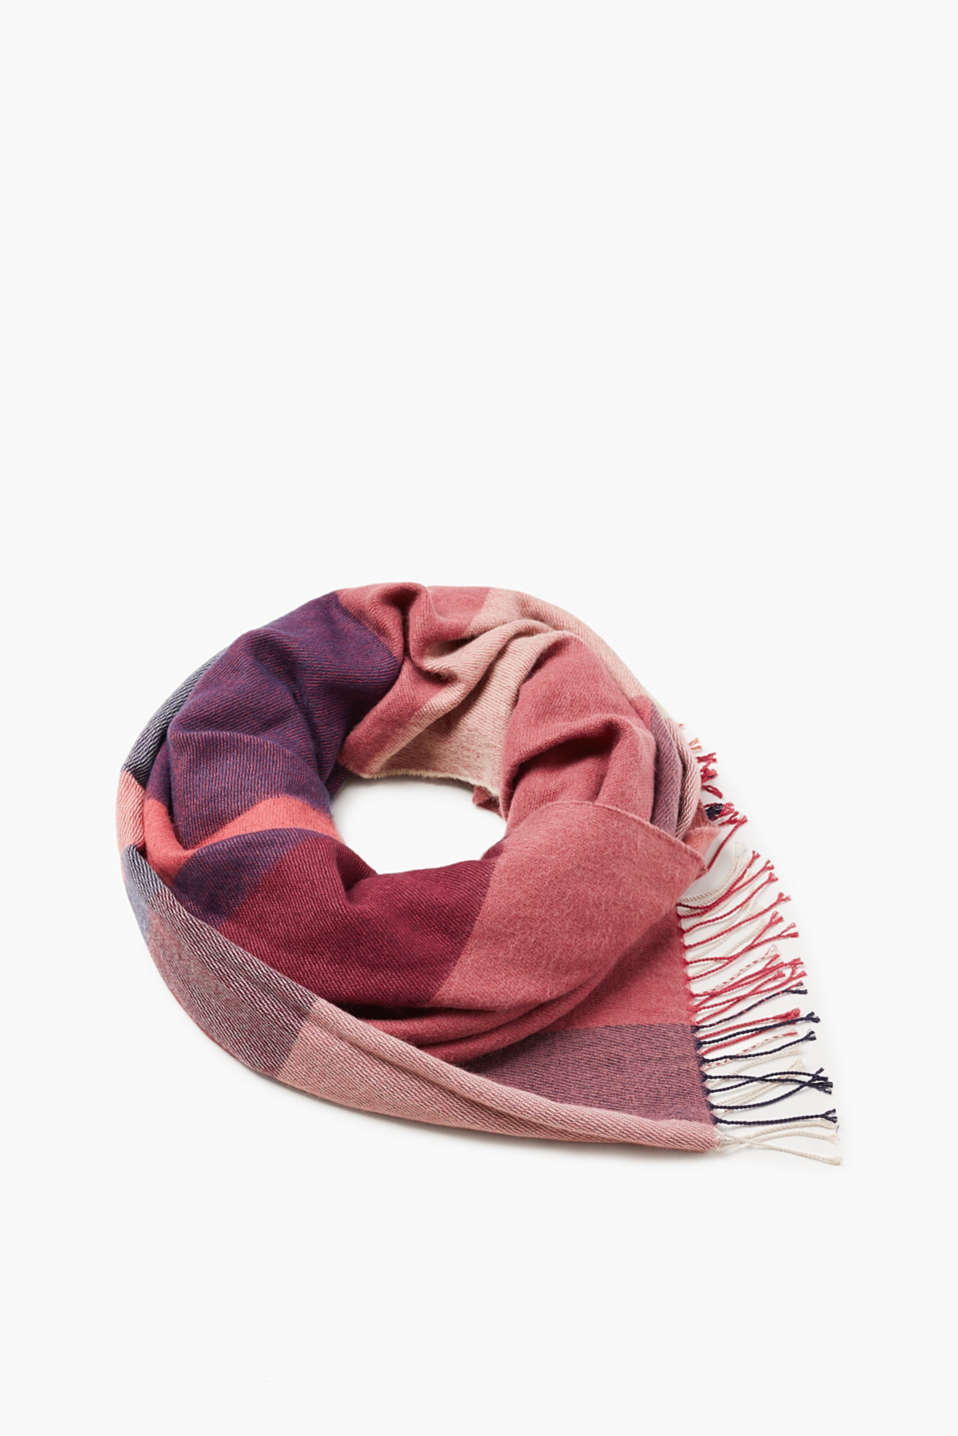 Oversized and colour block! This scarf stylishly completes your look for the cold days